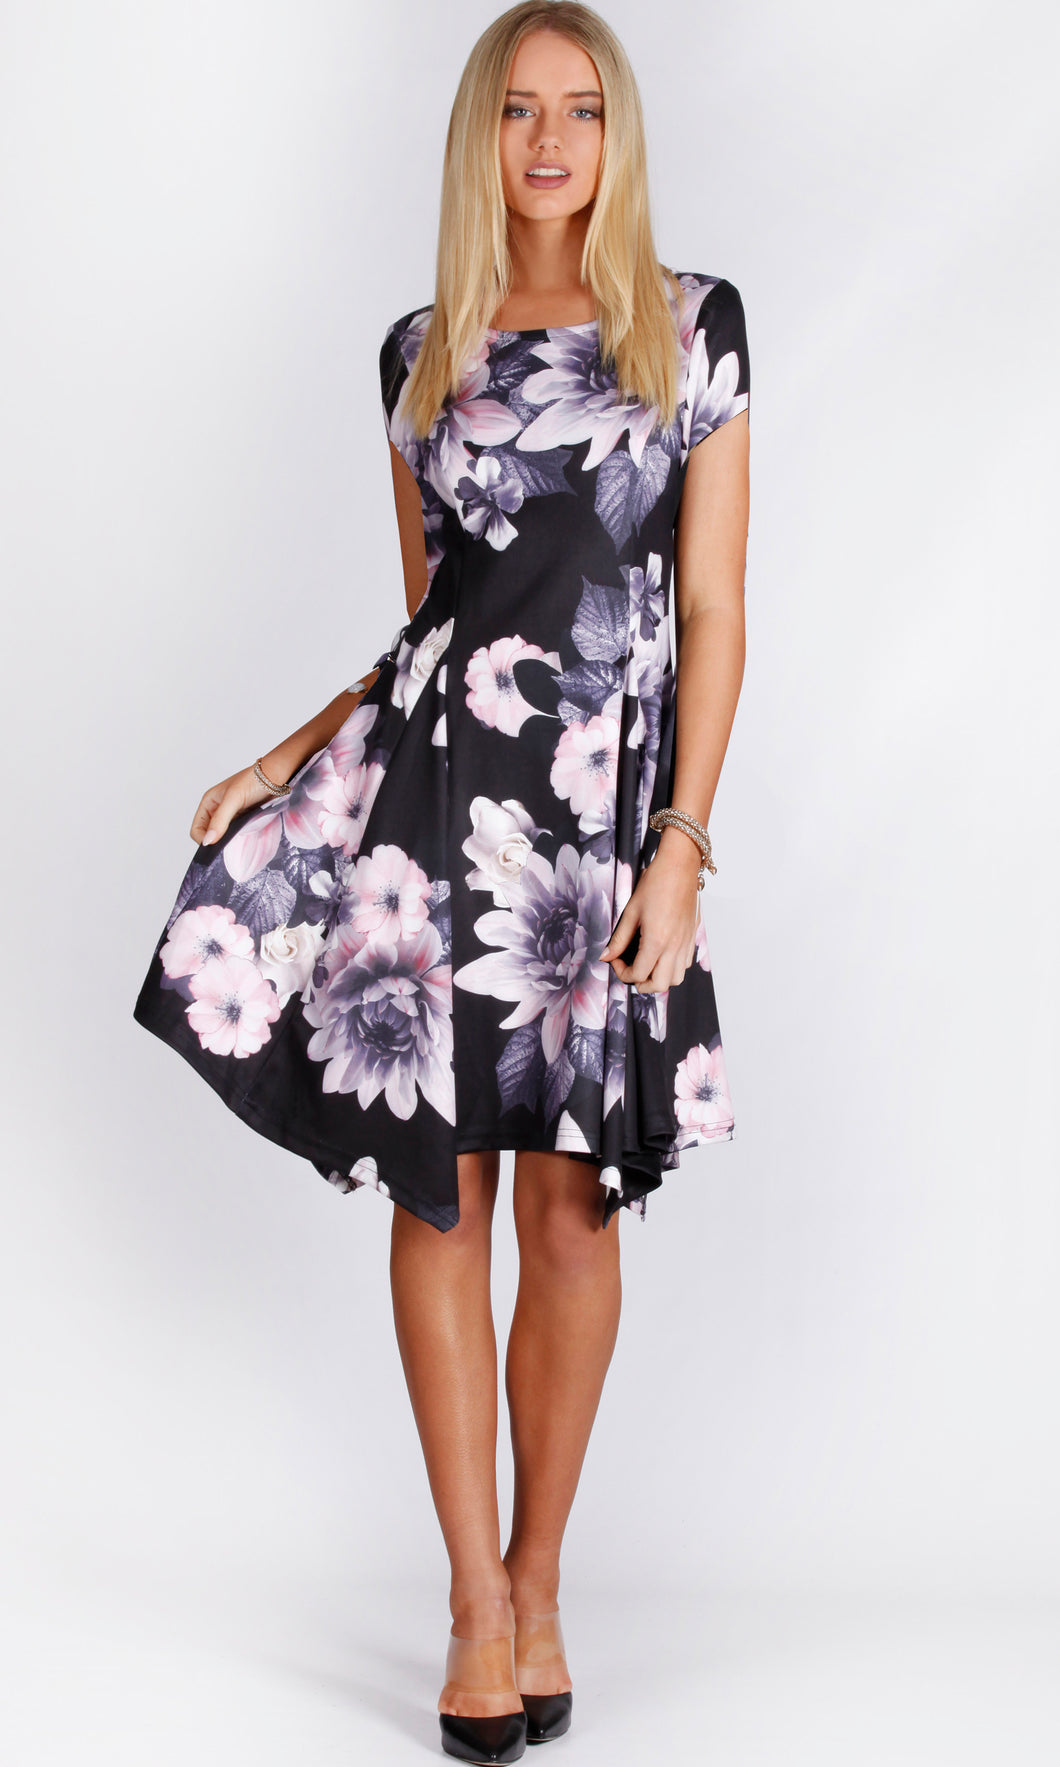 JS0051-2TB Cap Sleeve Floral Handkerchief Dress (Pack)